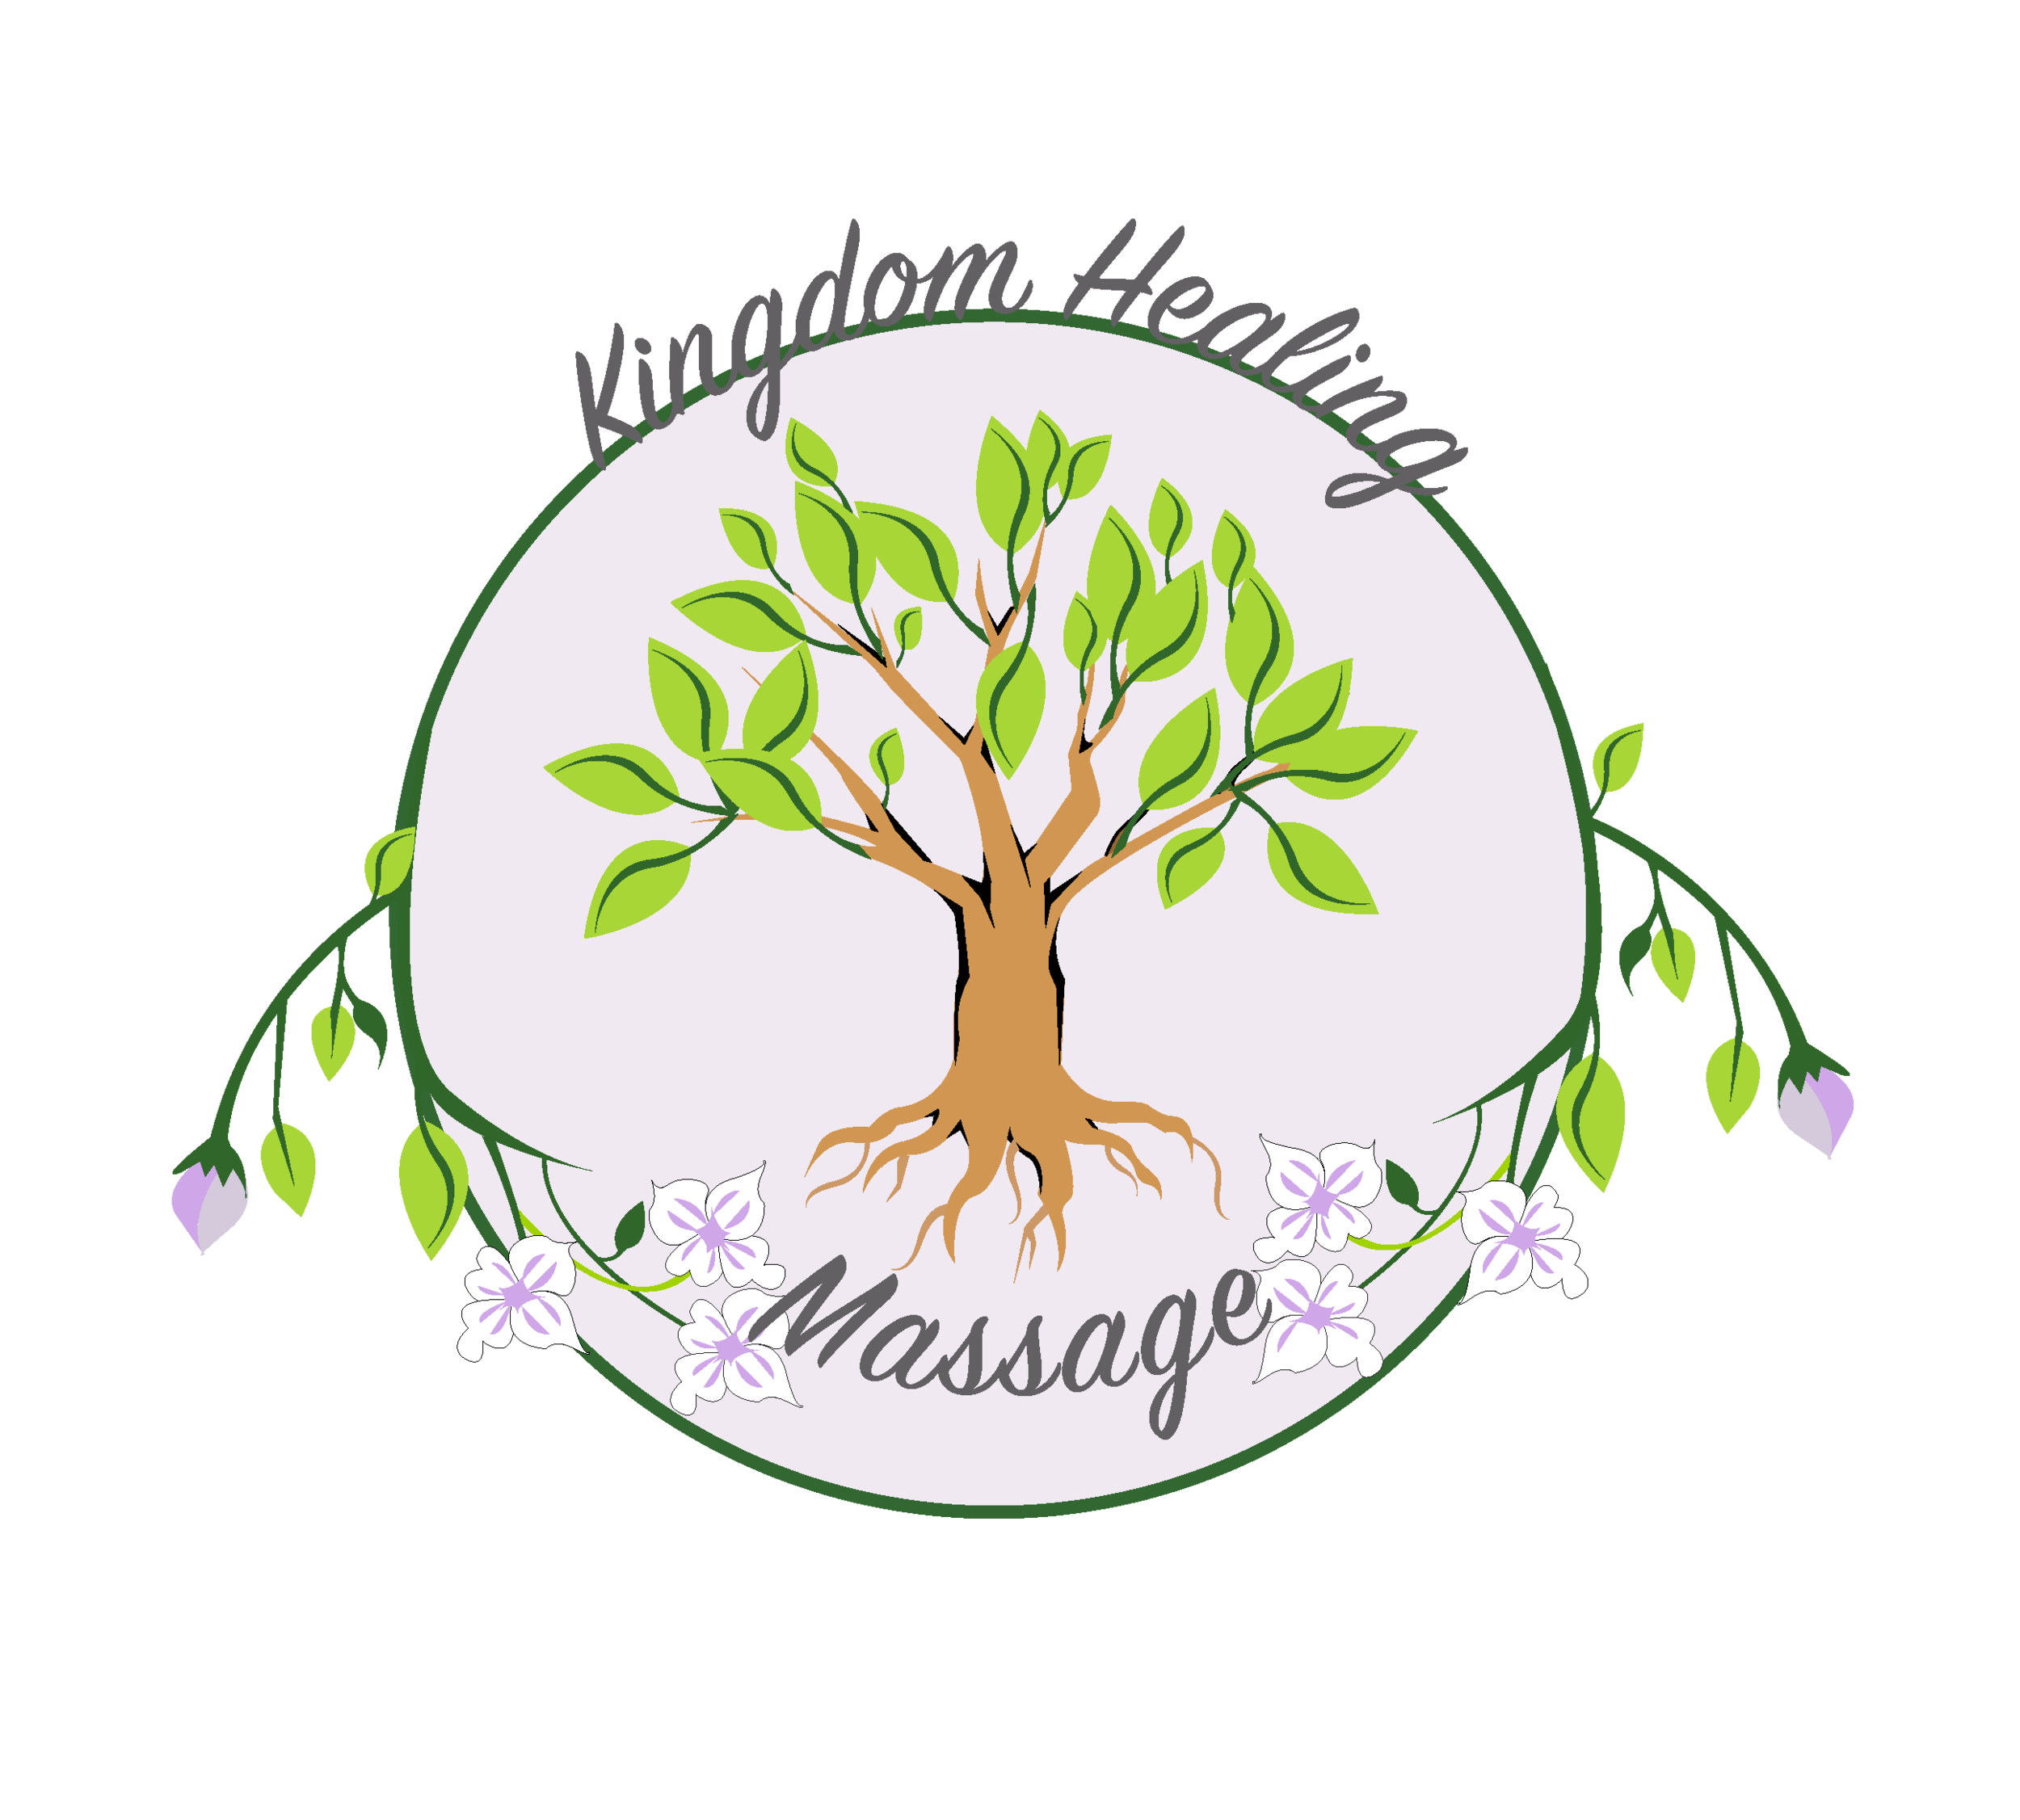 Kingdom Healing Massage